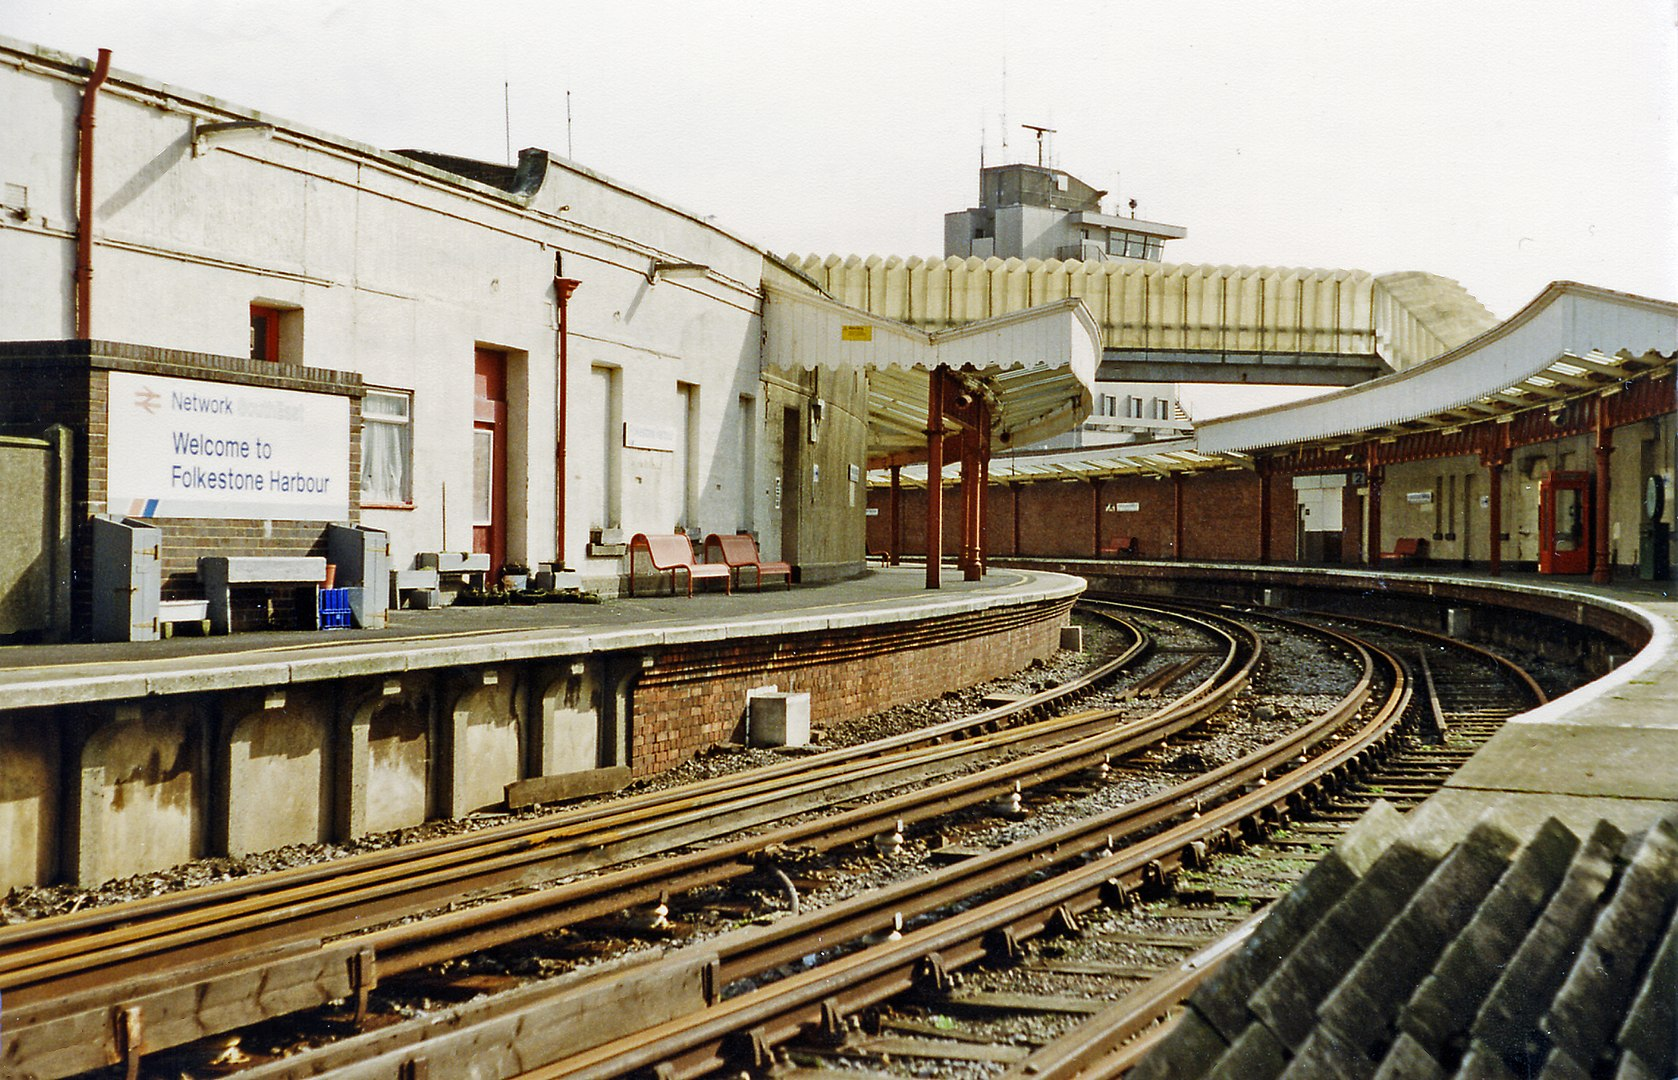 Folkestone Harbour Railway Station